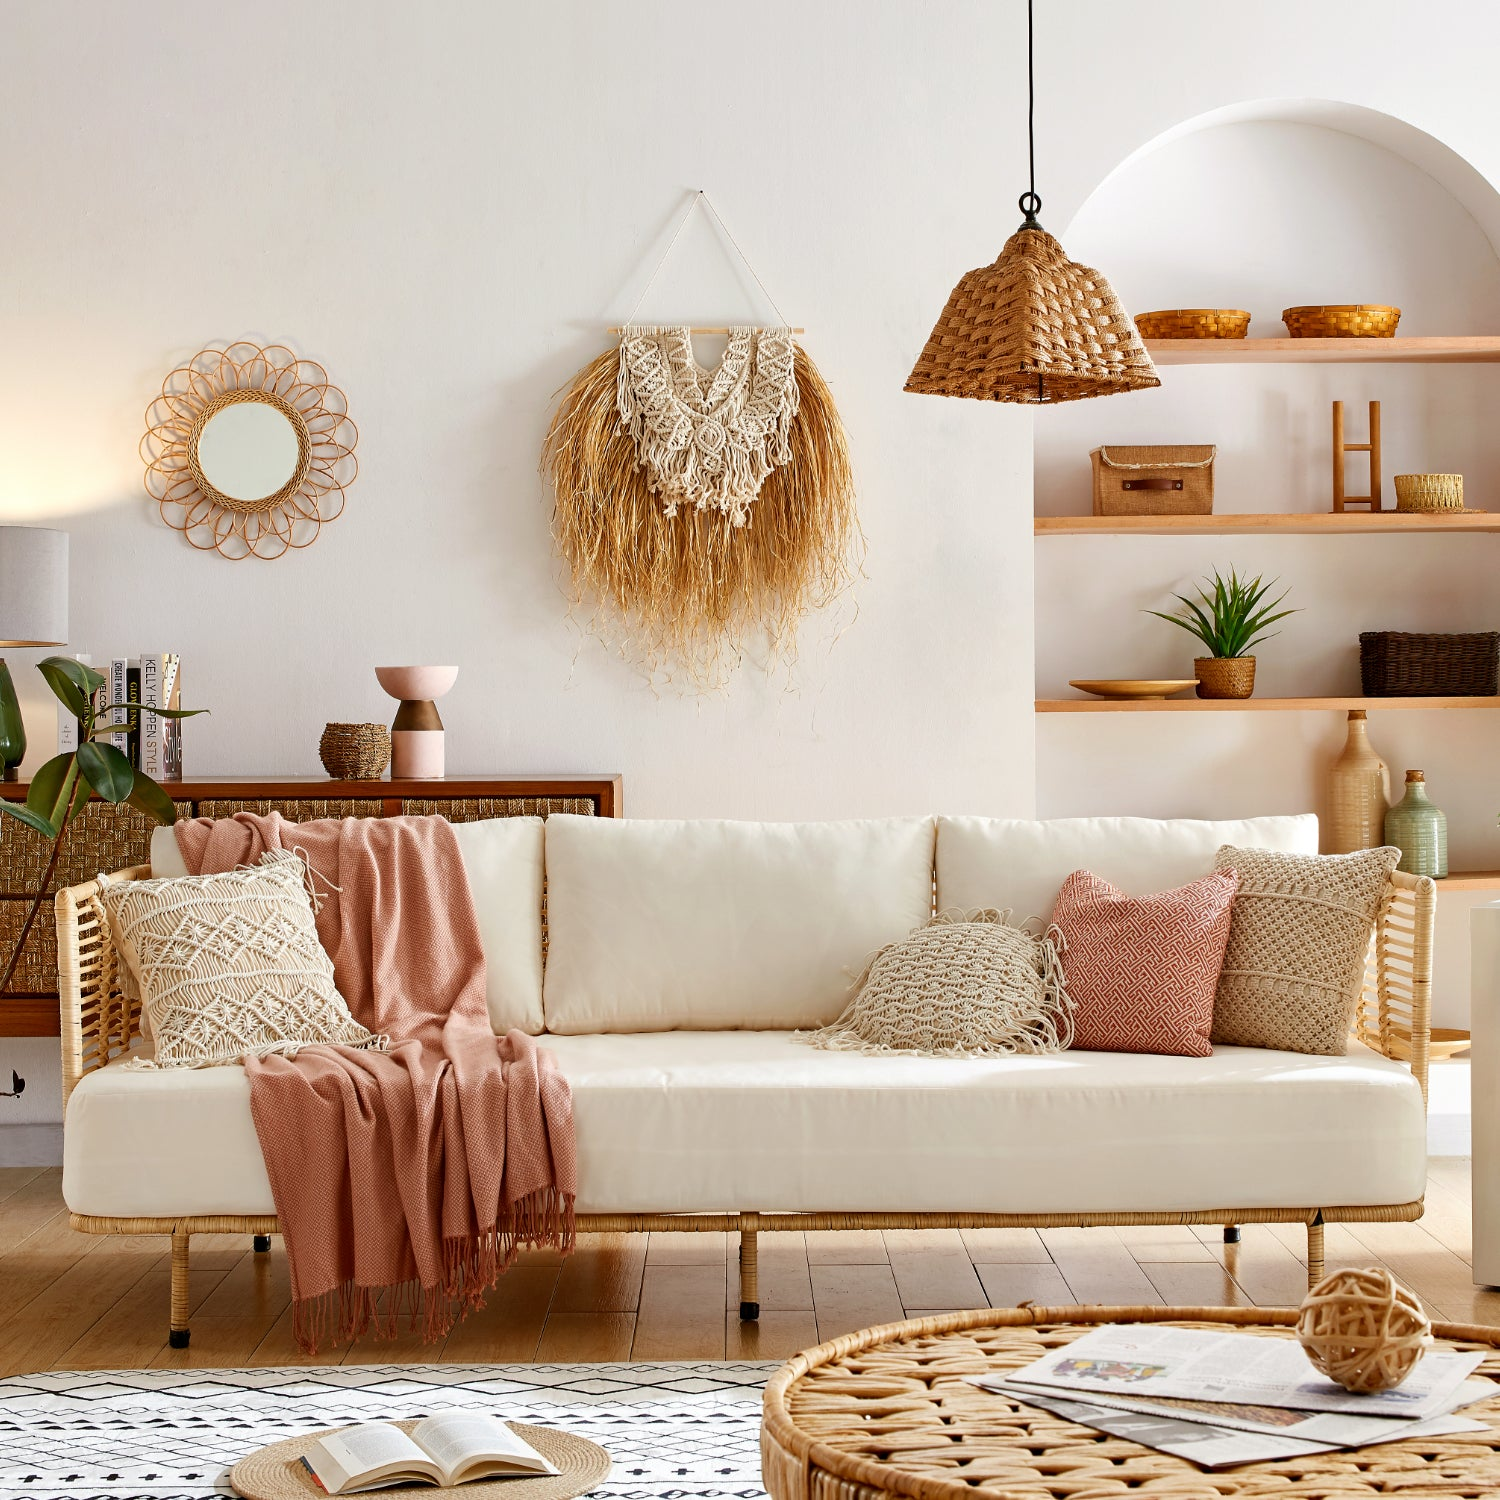 Plush white cushion sofa with wicker frame in a coastal decor room. Decorated with plants and natural fubar decor.